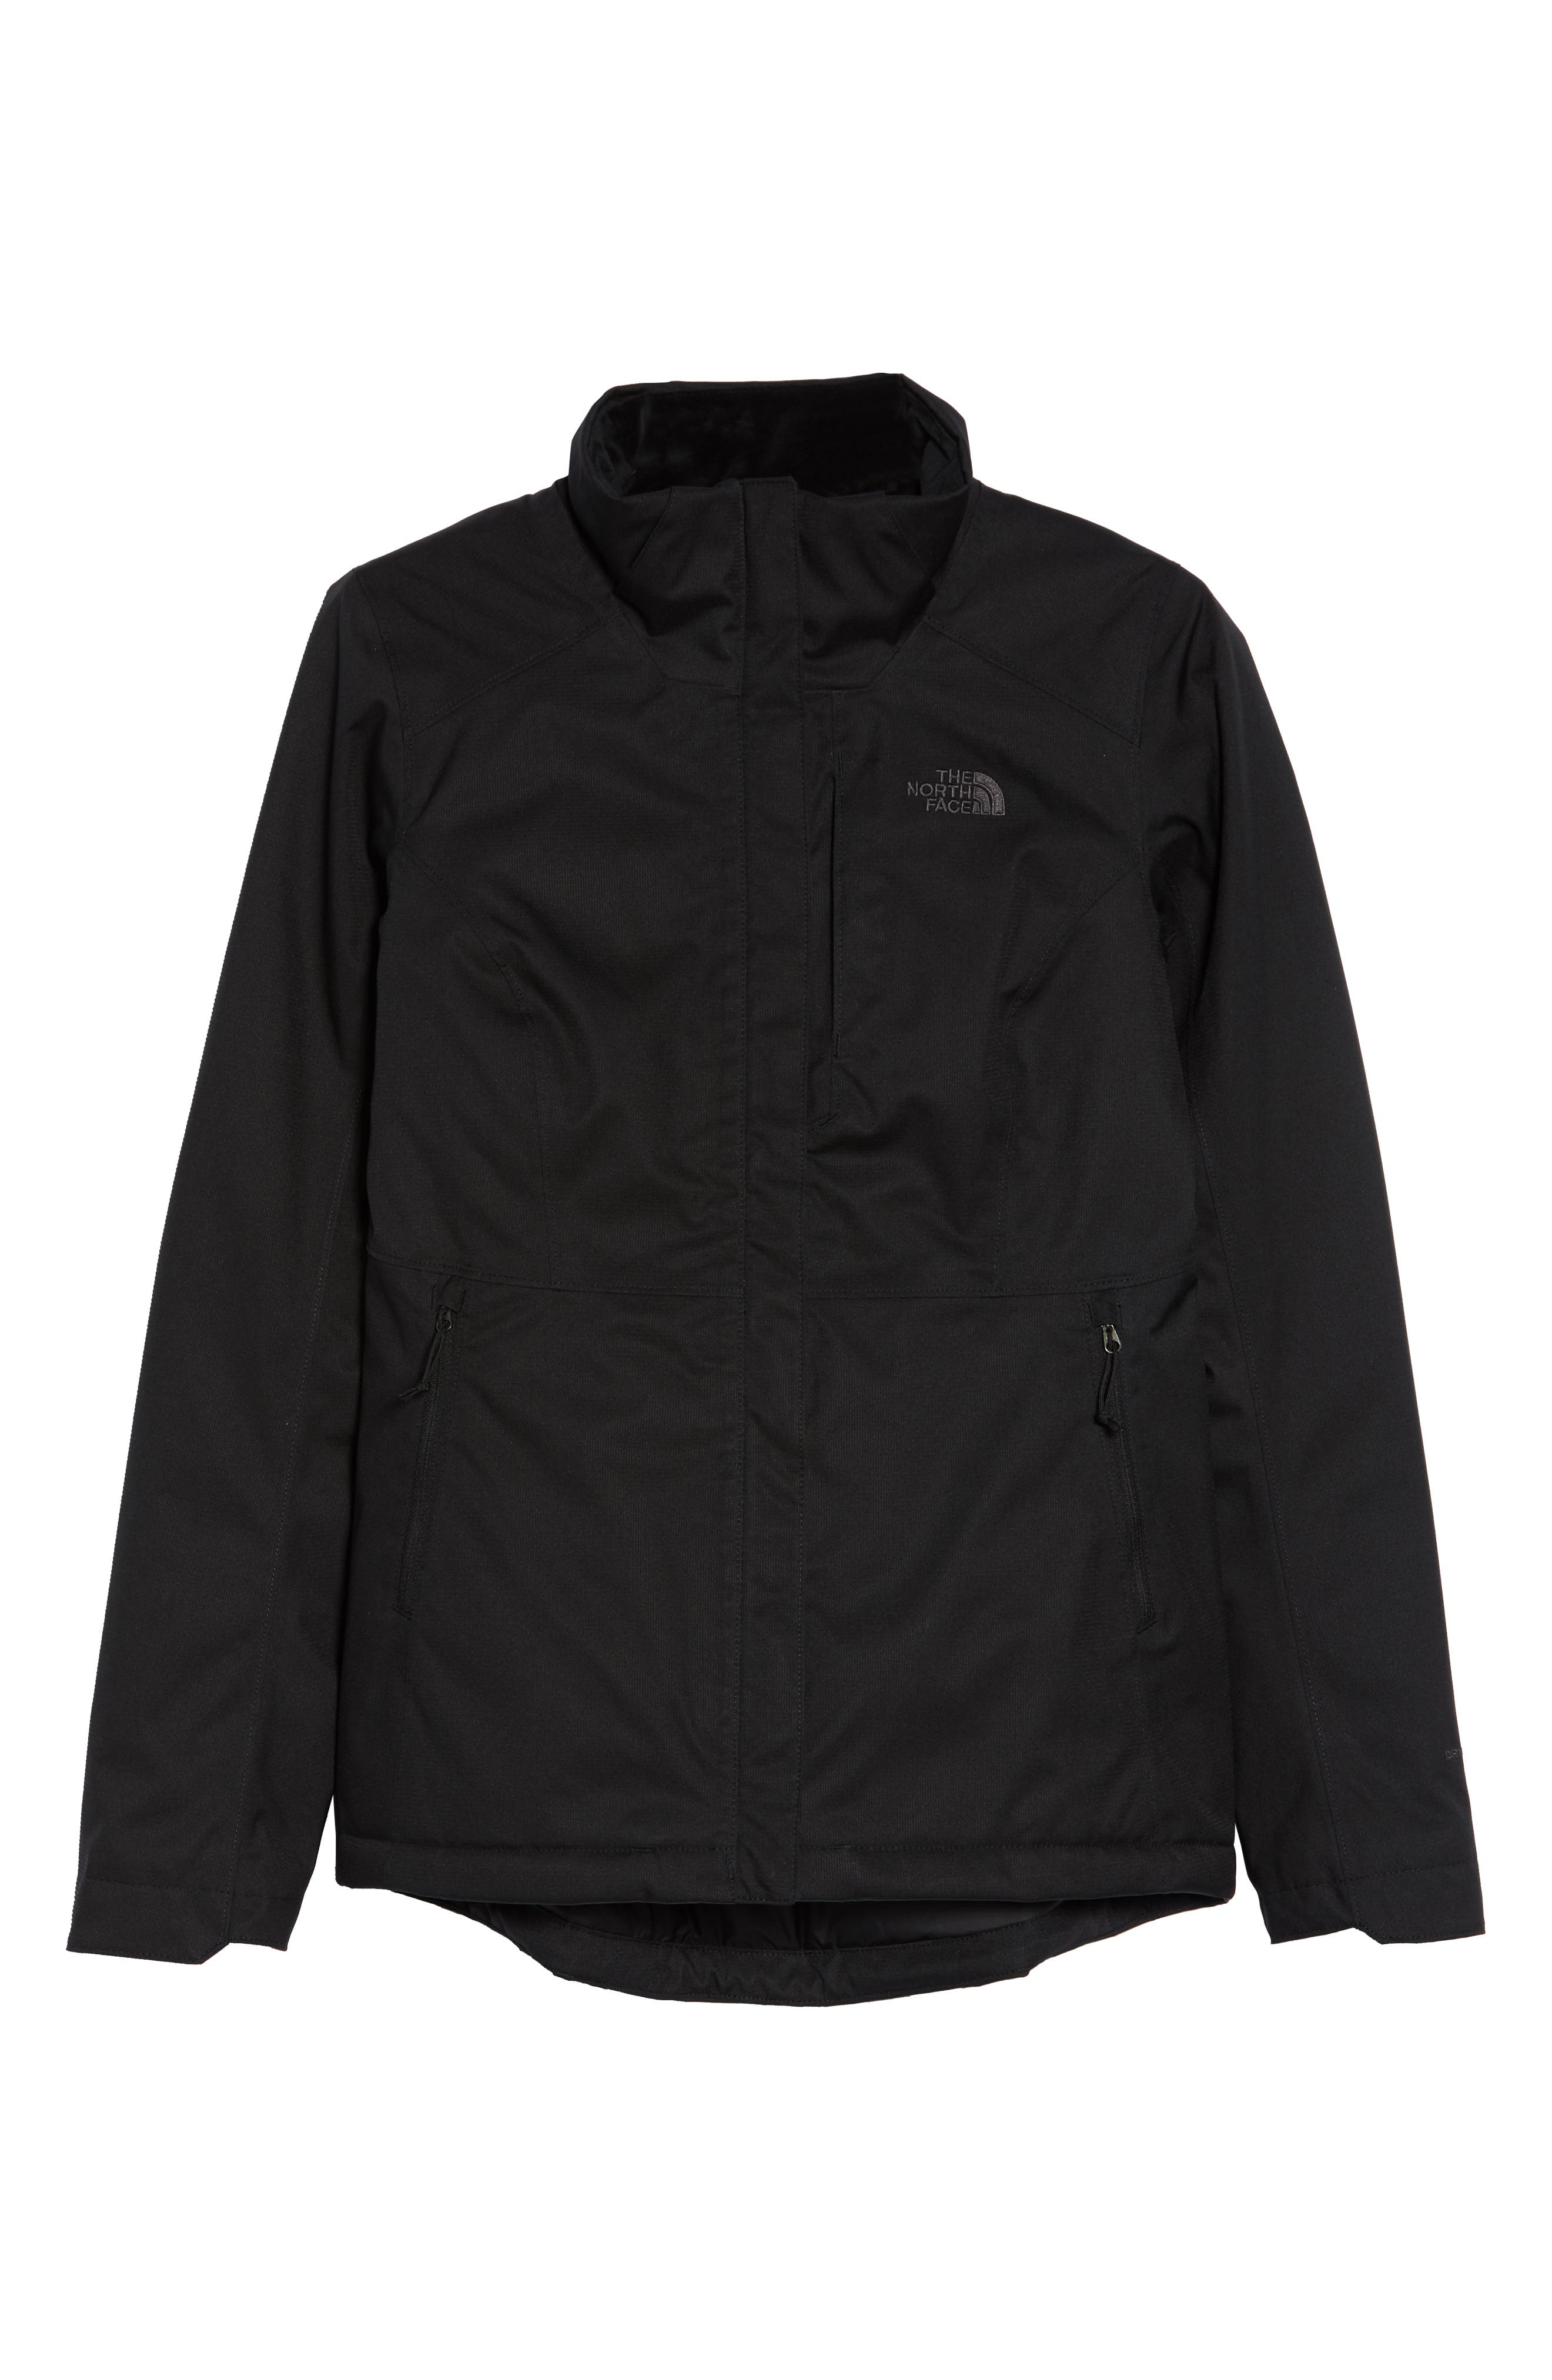 Inlux 2.0 Standard Fit Hooded DryVent Jacket,                             Alternate thumbnail 6, color,                             TNF BLACK